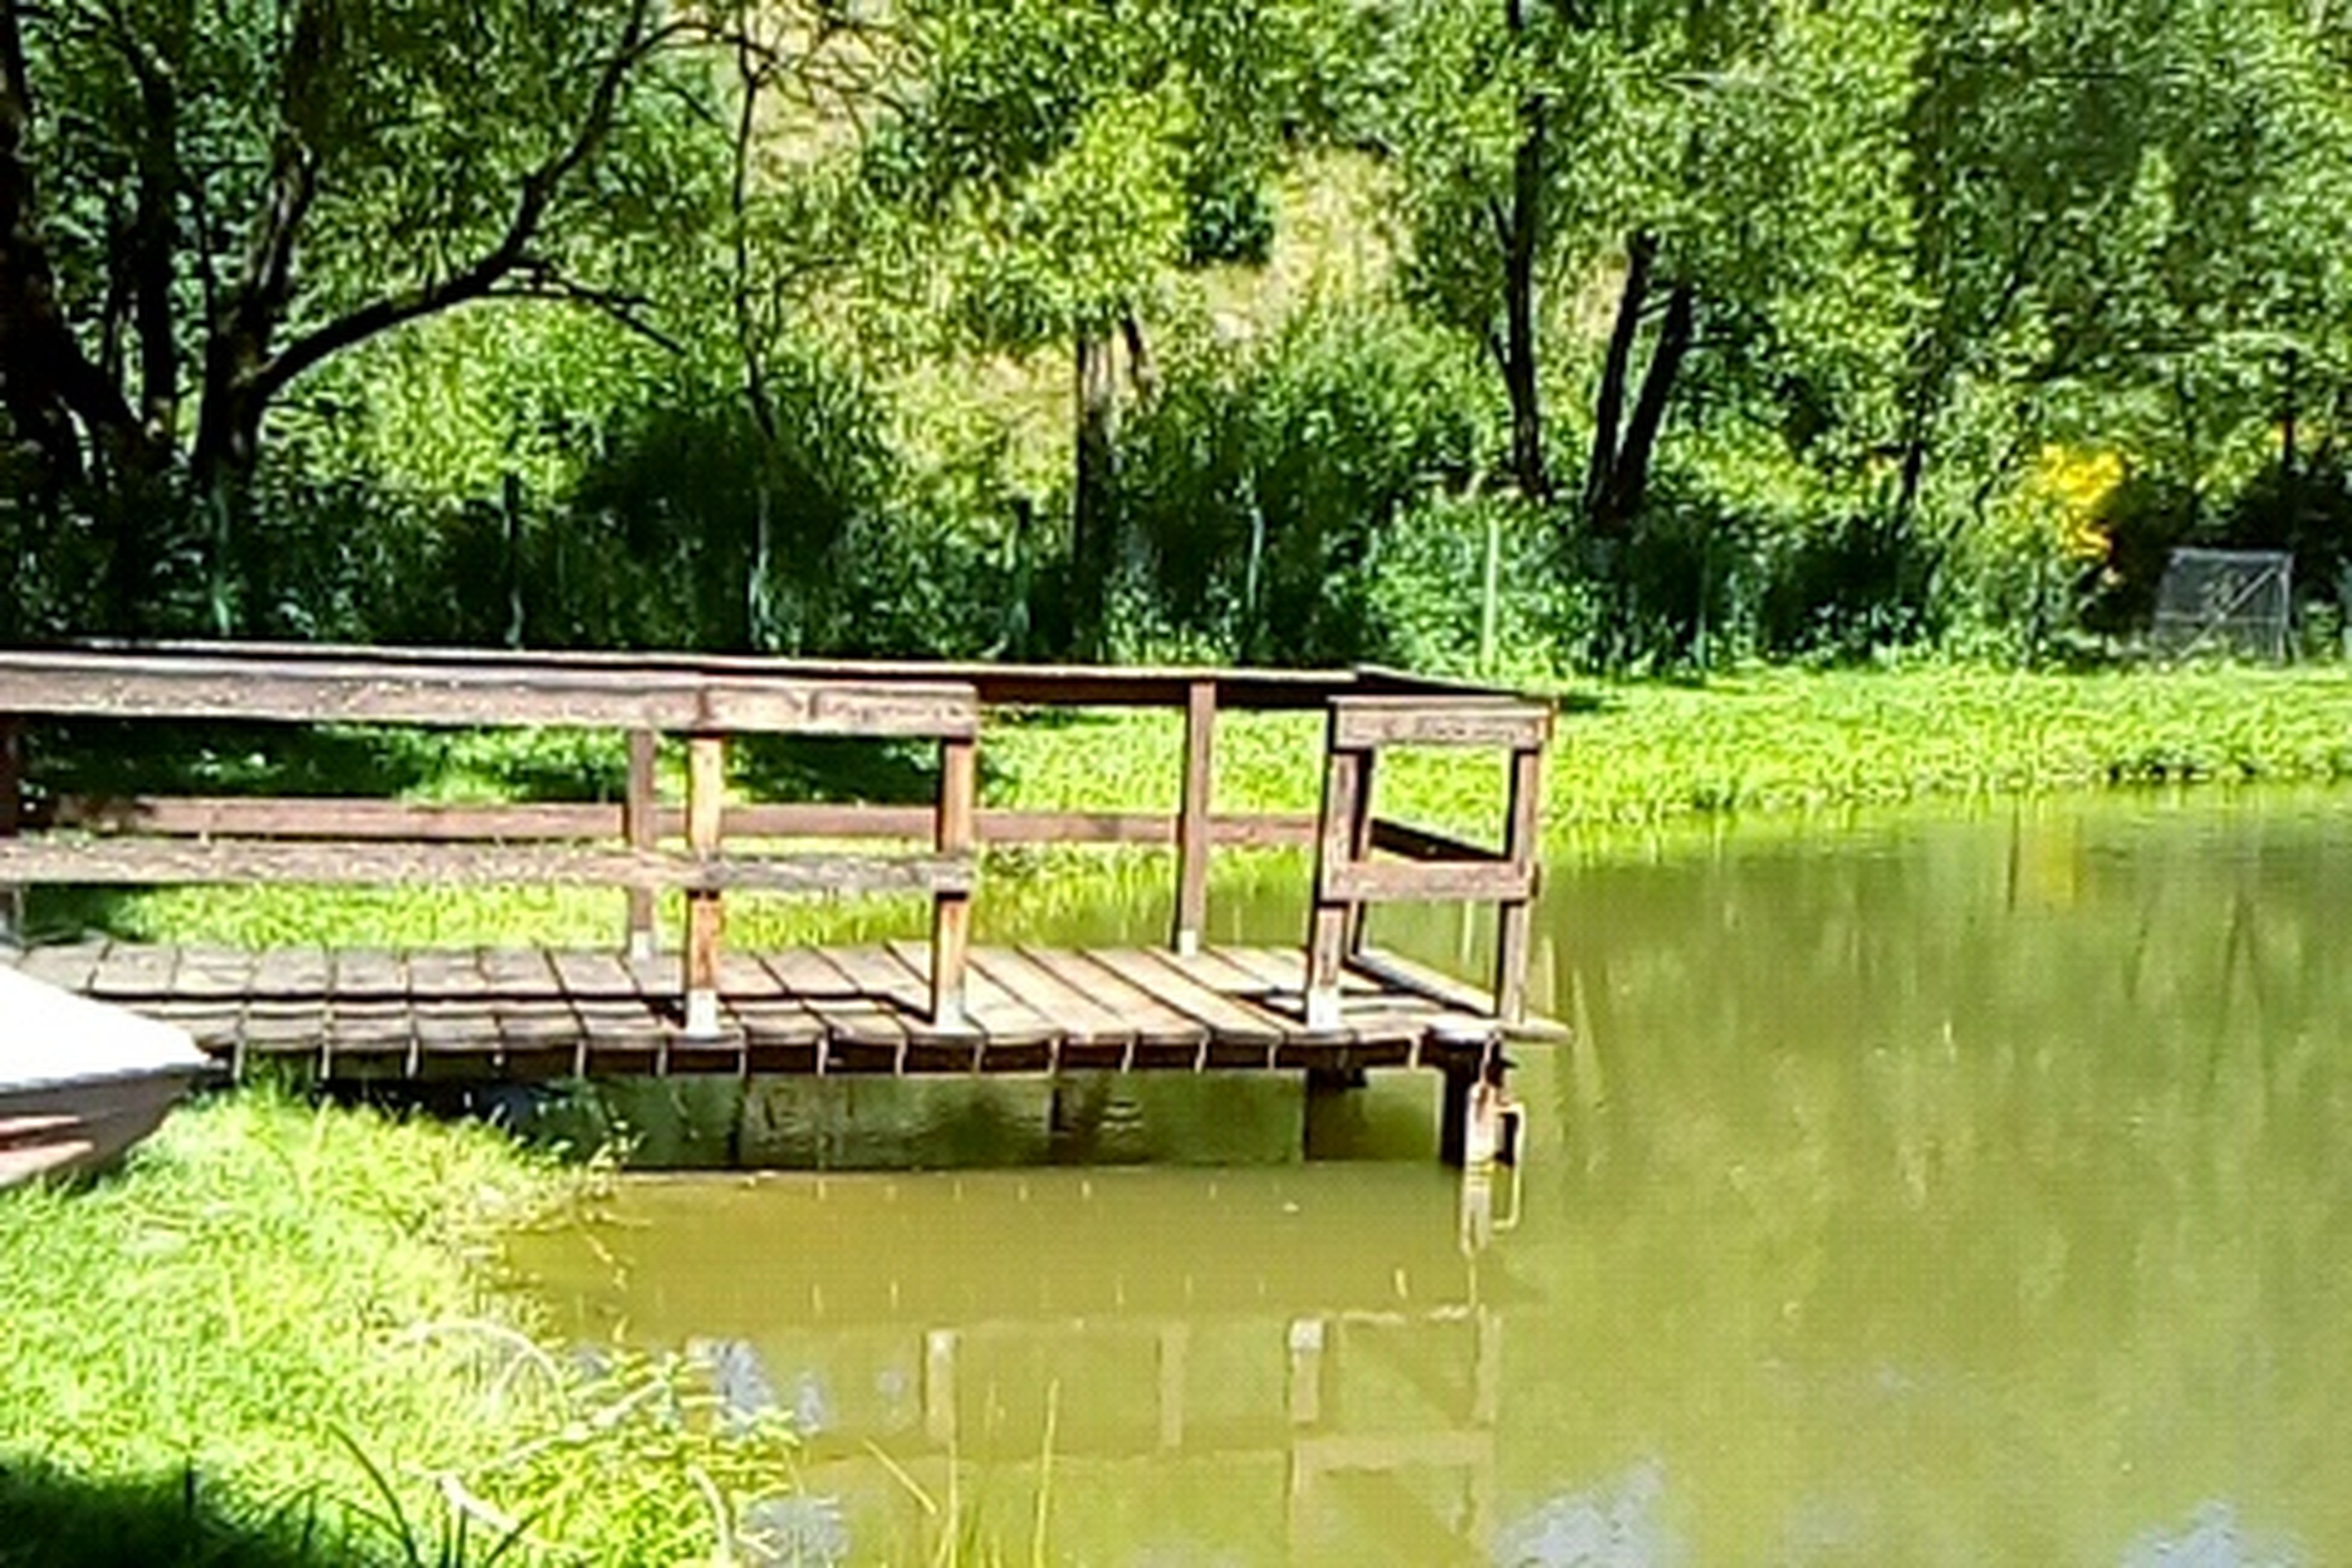 water, tree, waterfront, reflection, tranquility, tranquil scene, lake, pier, scenics, connection, nature, bridge - man made structure, footbridge, beauty in nature, growth, standing water, calm, green color, day, green, outdoors, non-urban scene, majestic, no people, park